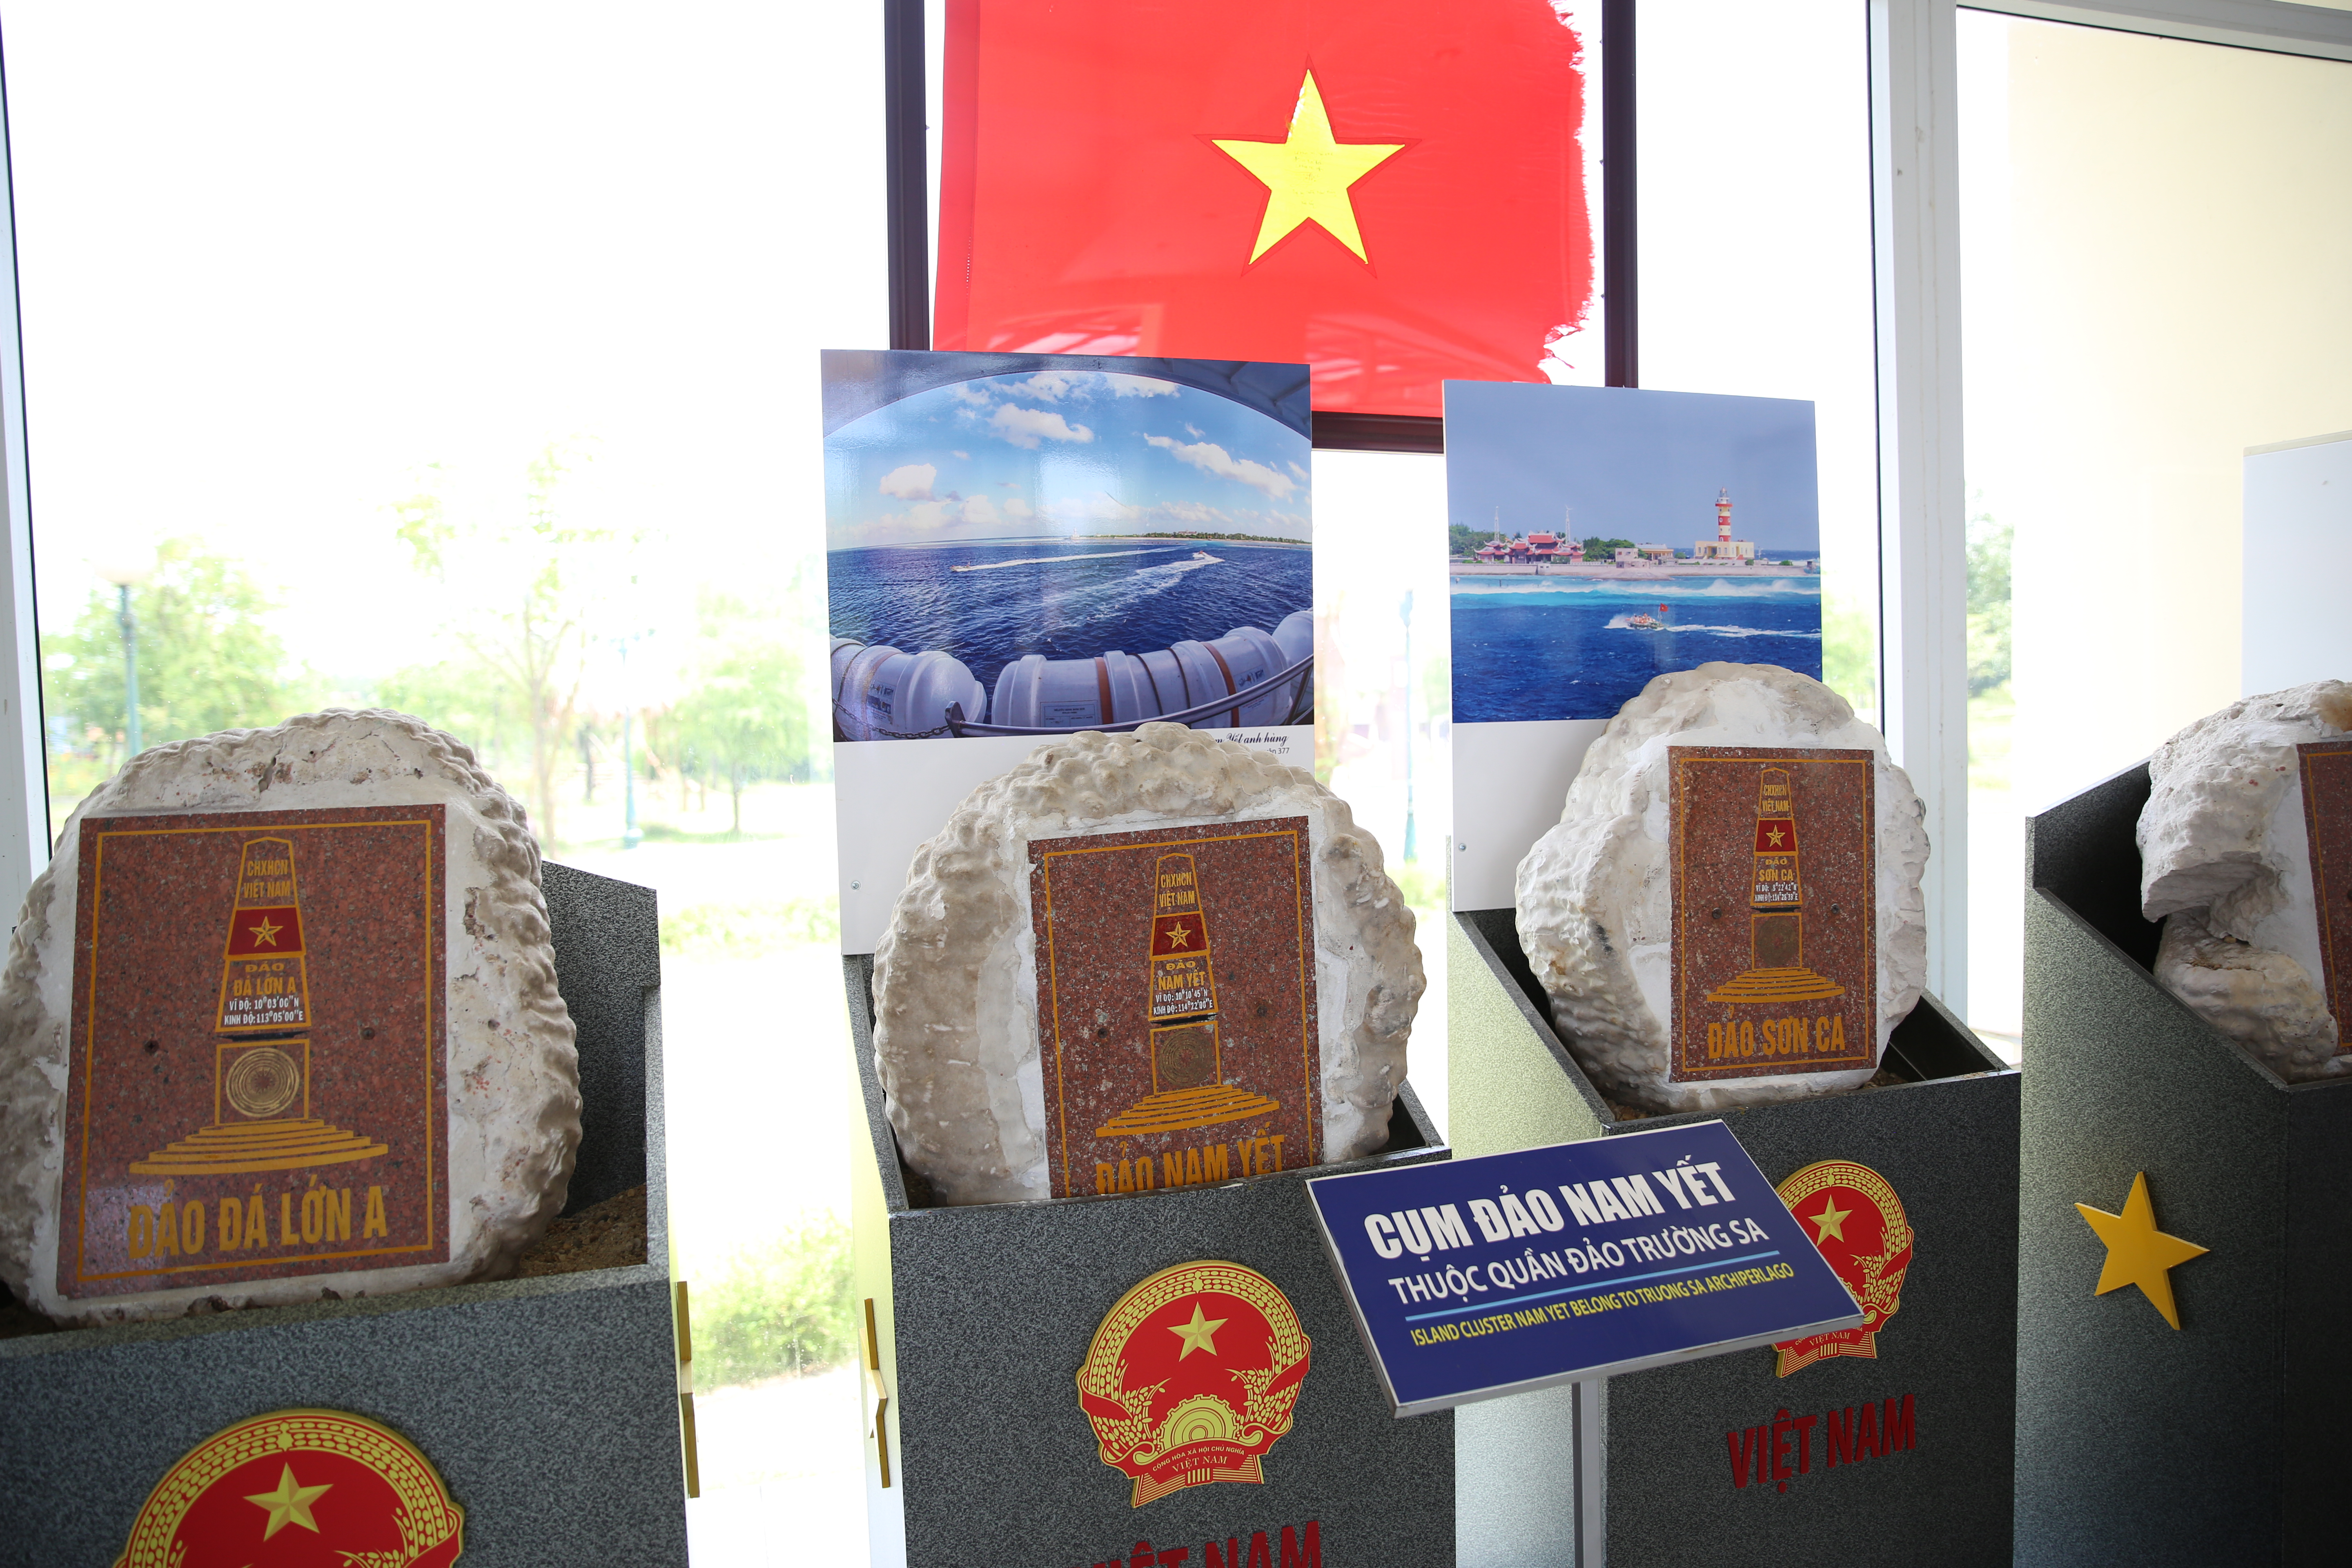 21 stoneboards from 21 islands on Truong Sa are on display (Photo: VNA)